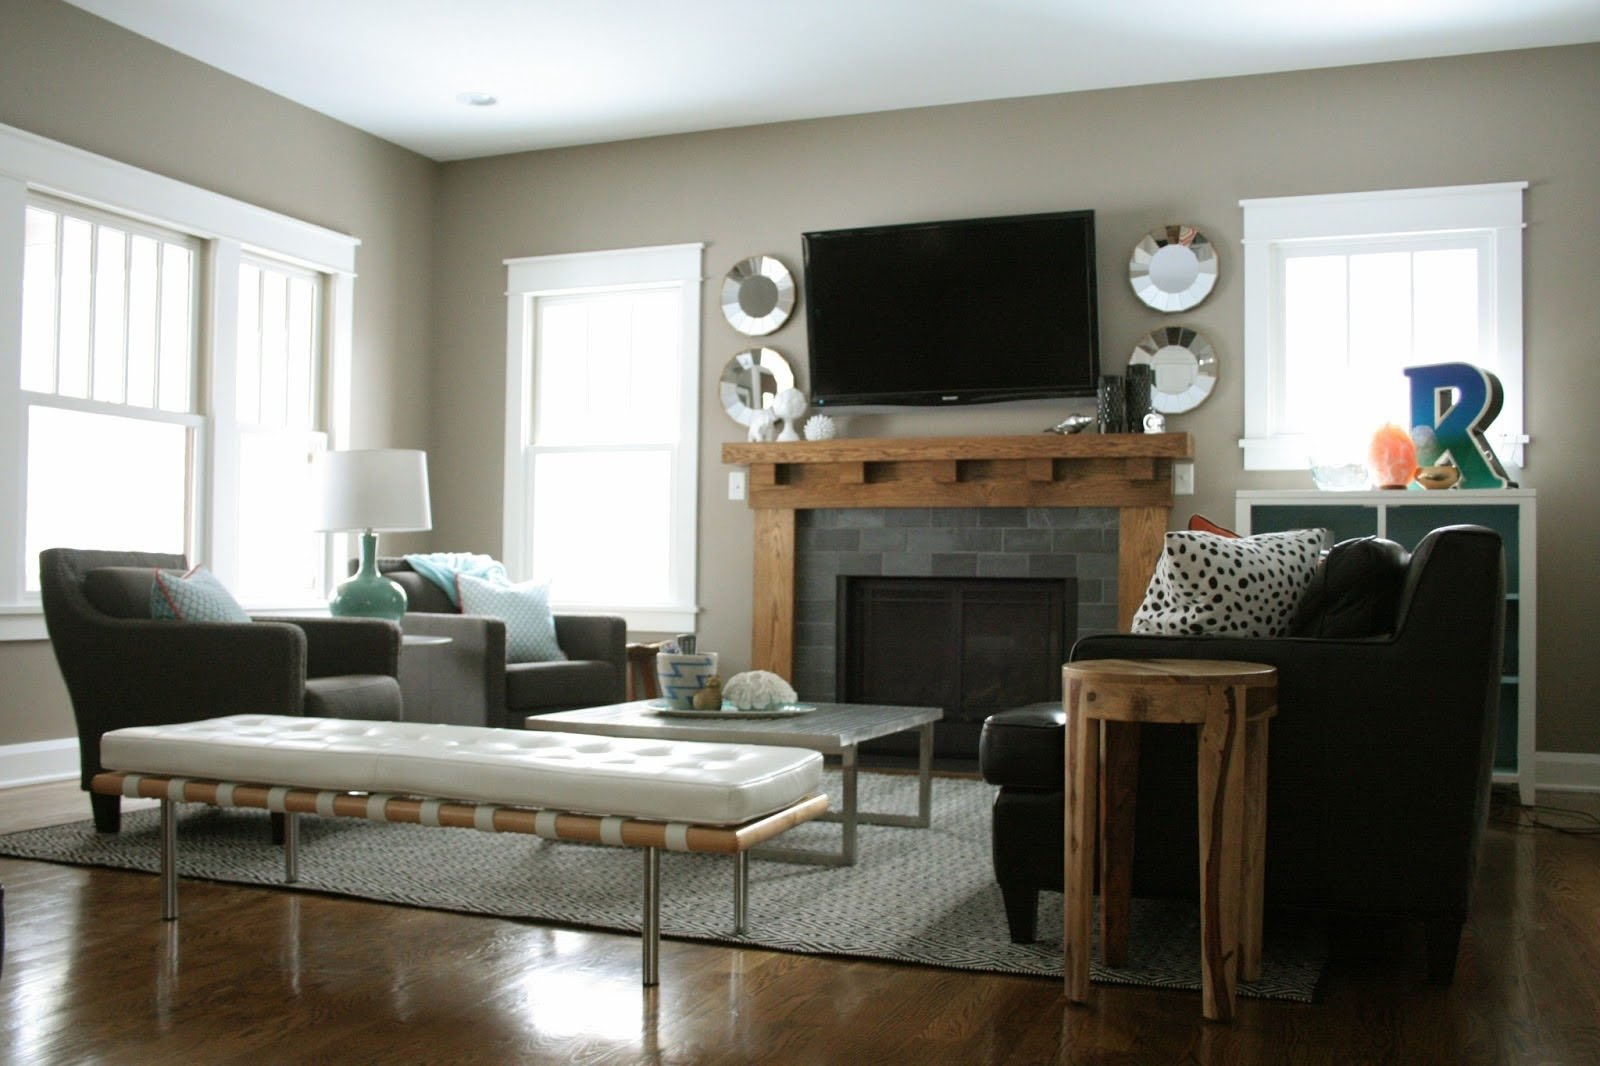 10 Fabulous Small Living Room Ideas With Fireplace decorating ideas for living room with fireplace and tv design small 2020